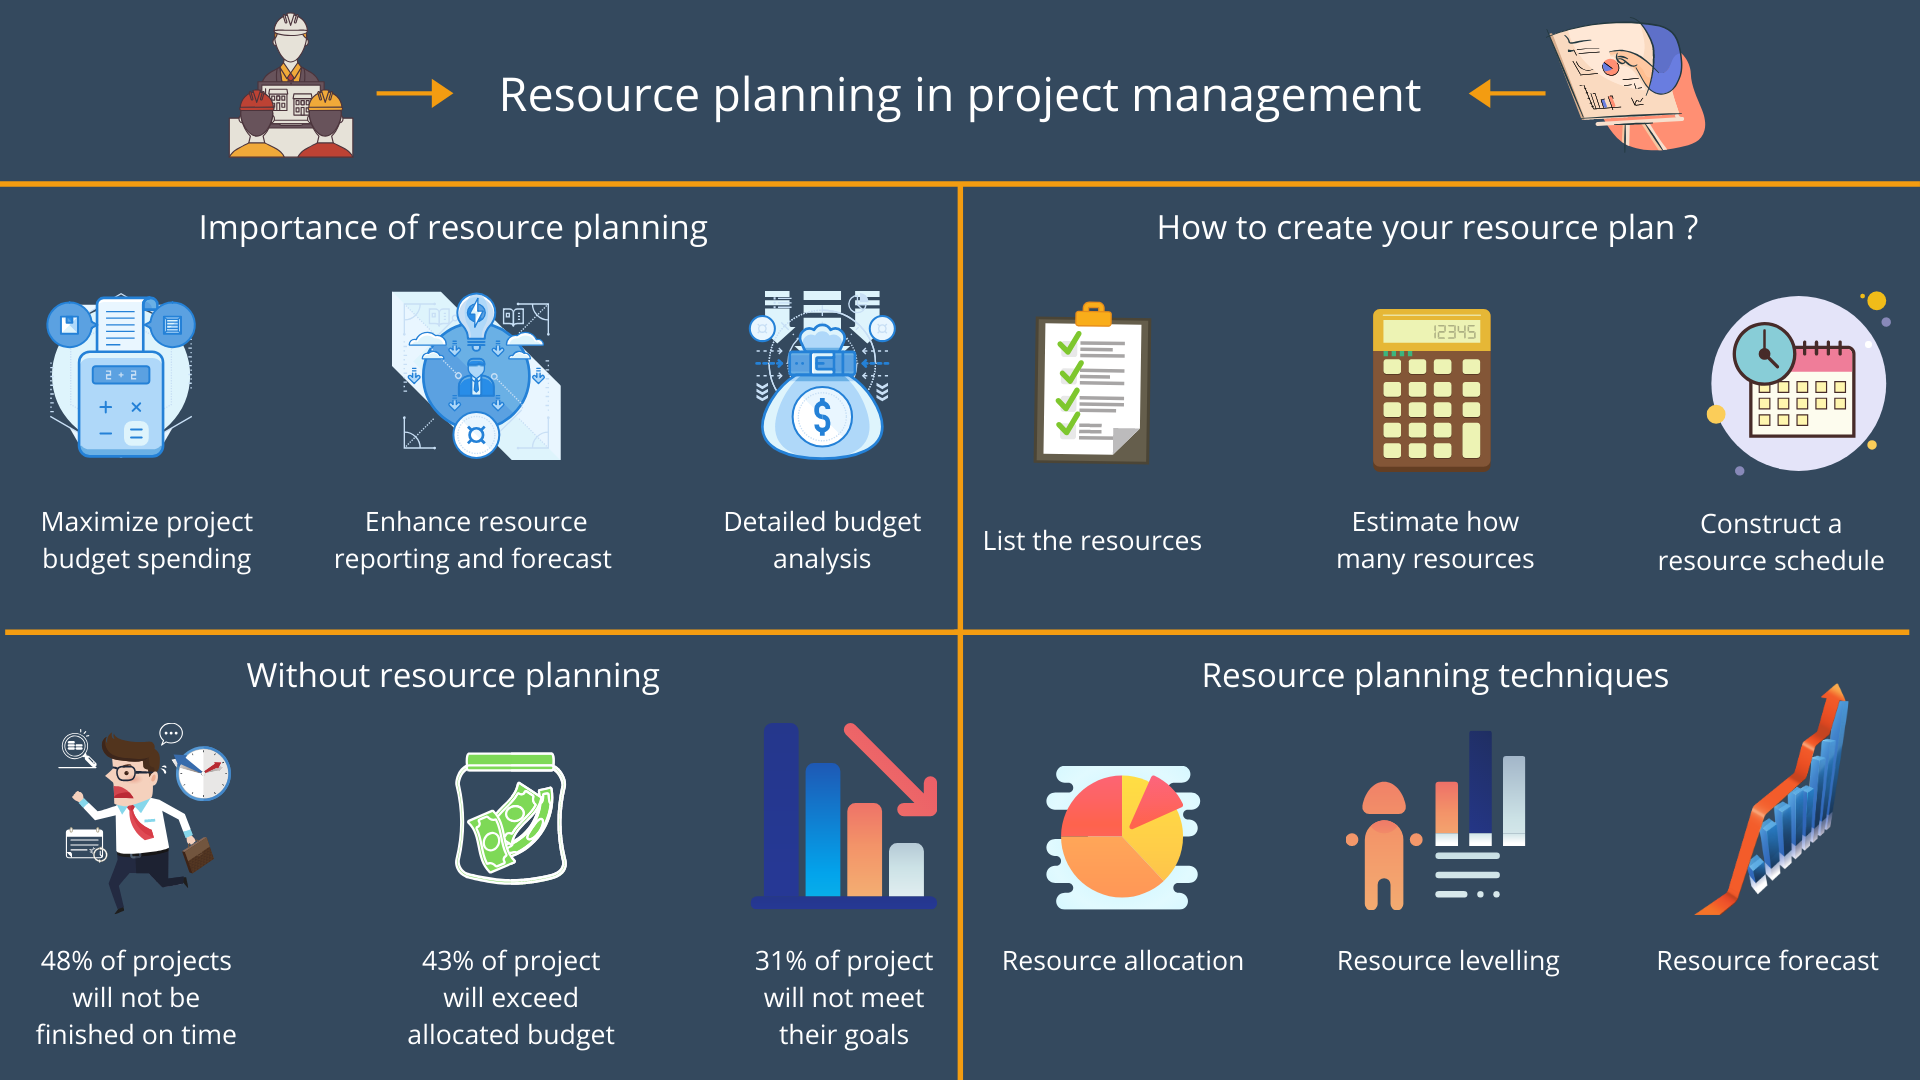 Importance of resource planning in project management